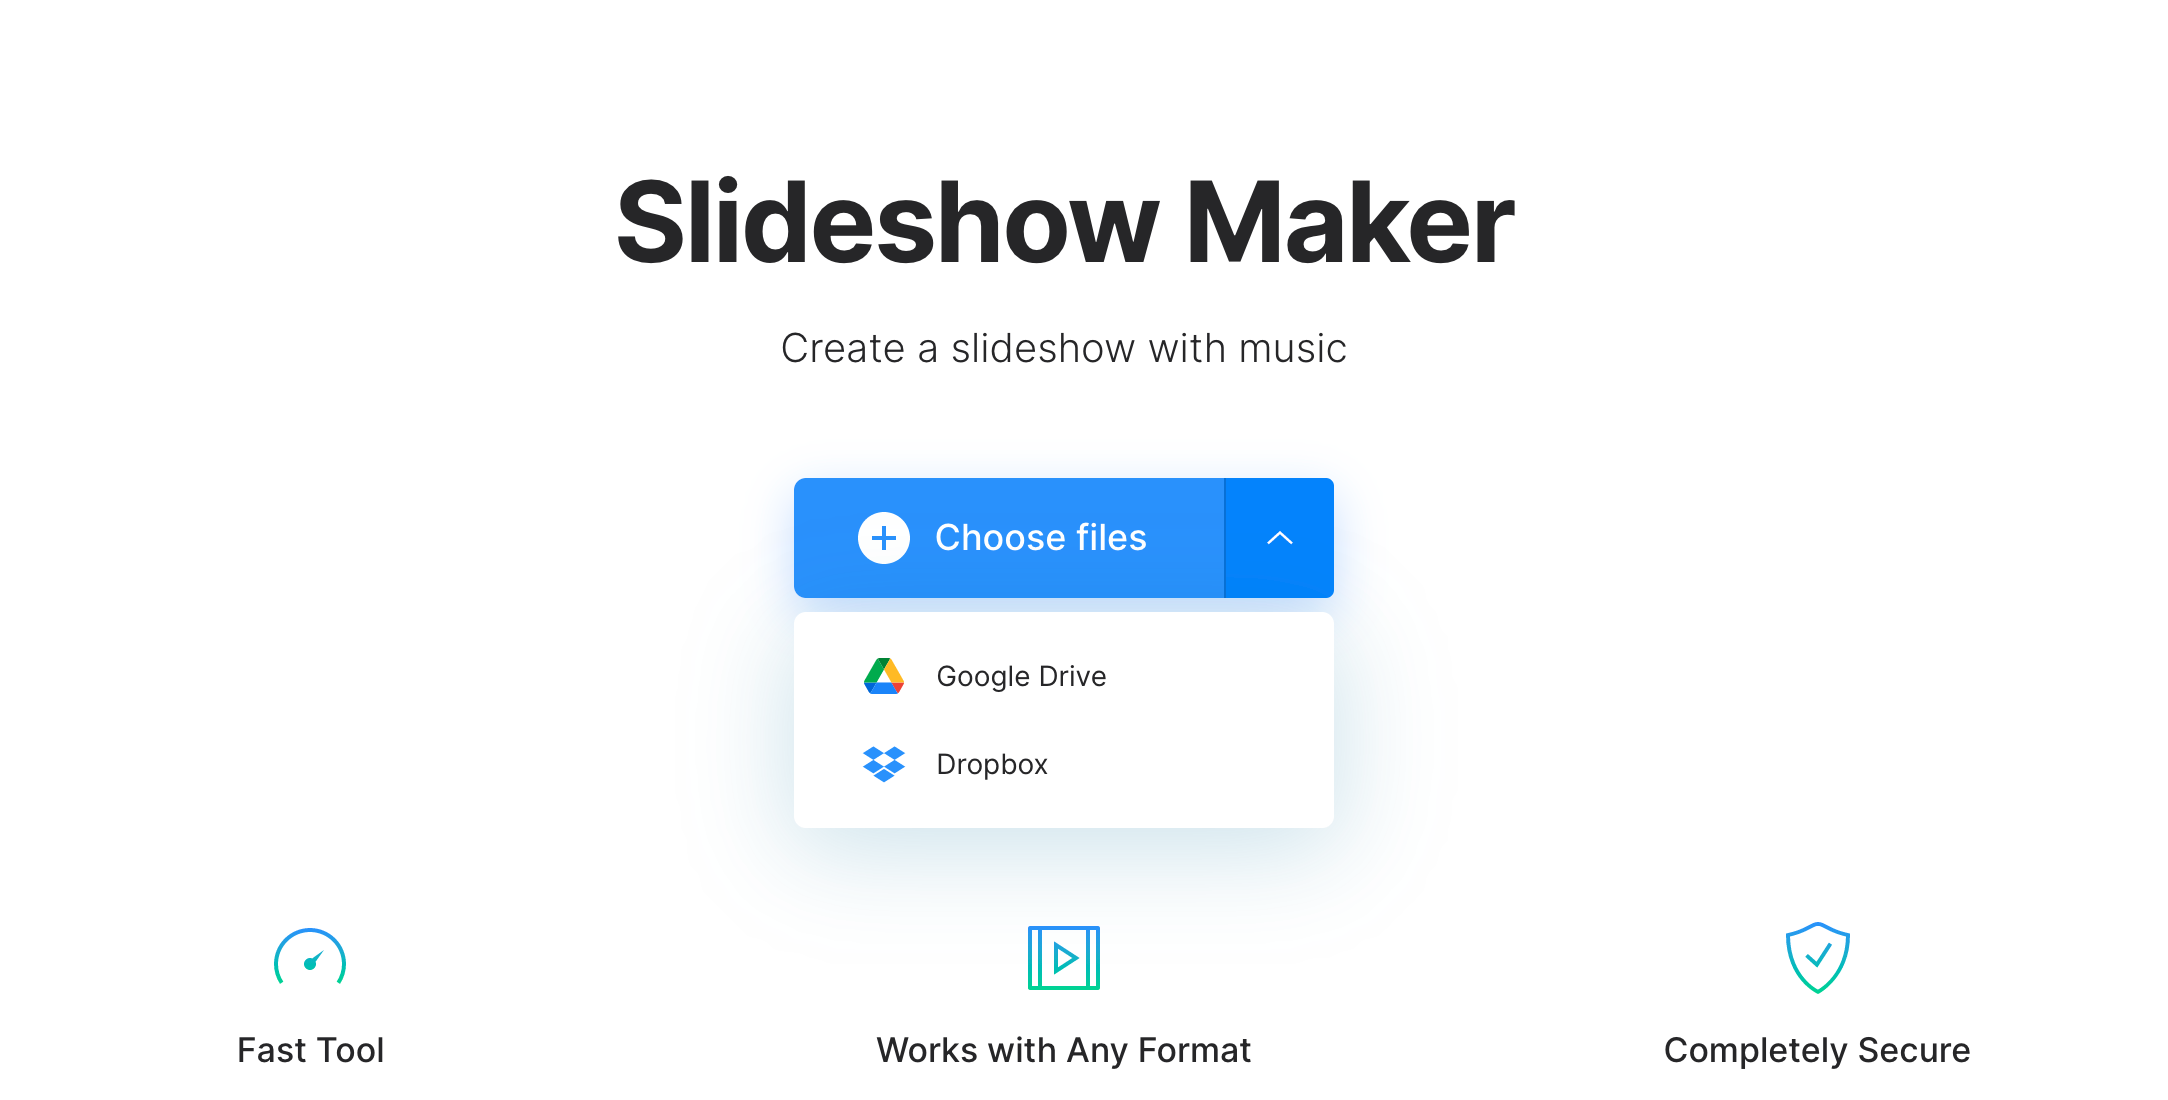 Upload pictures to make video with music